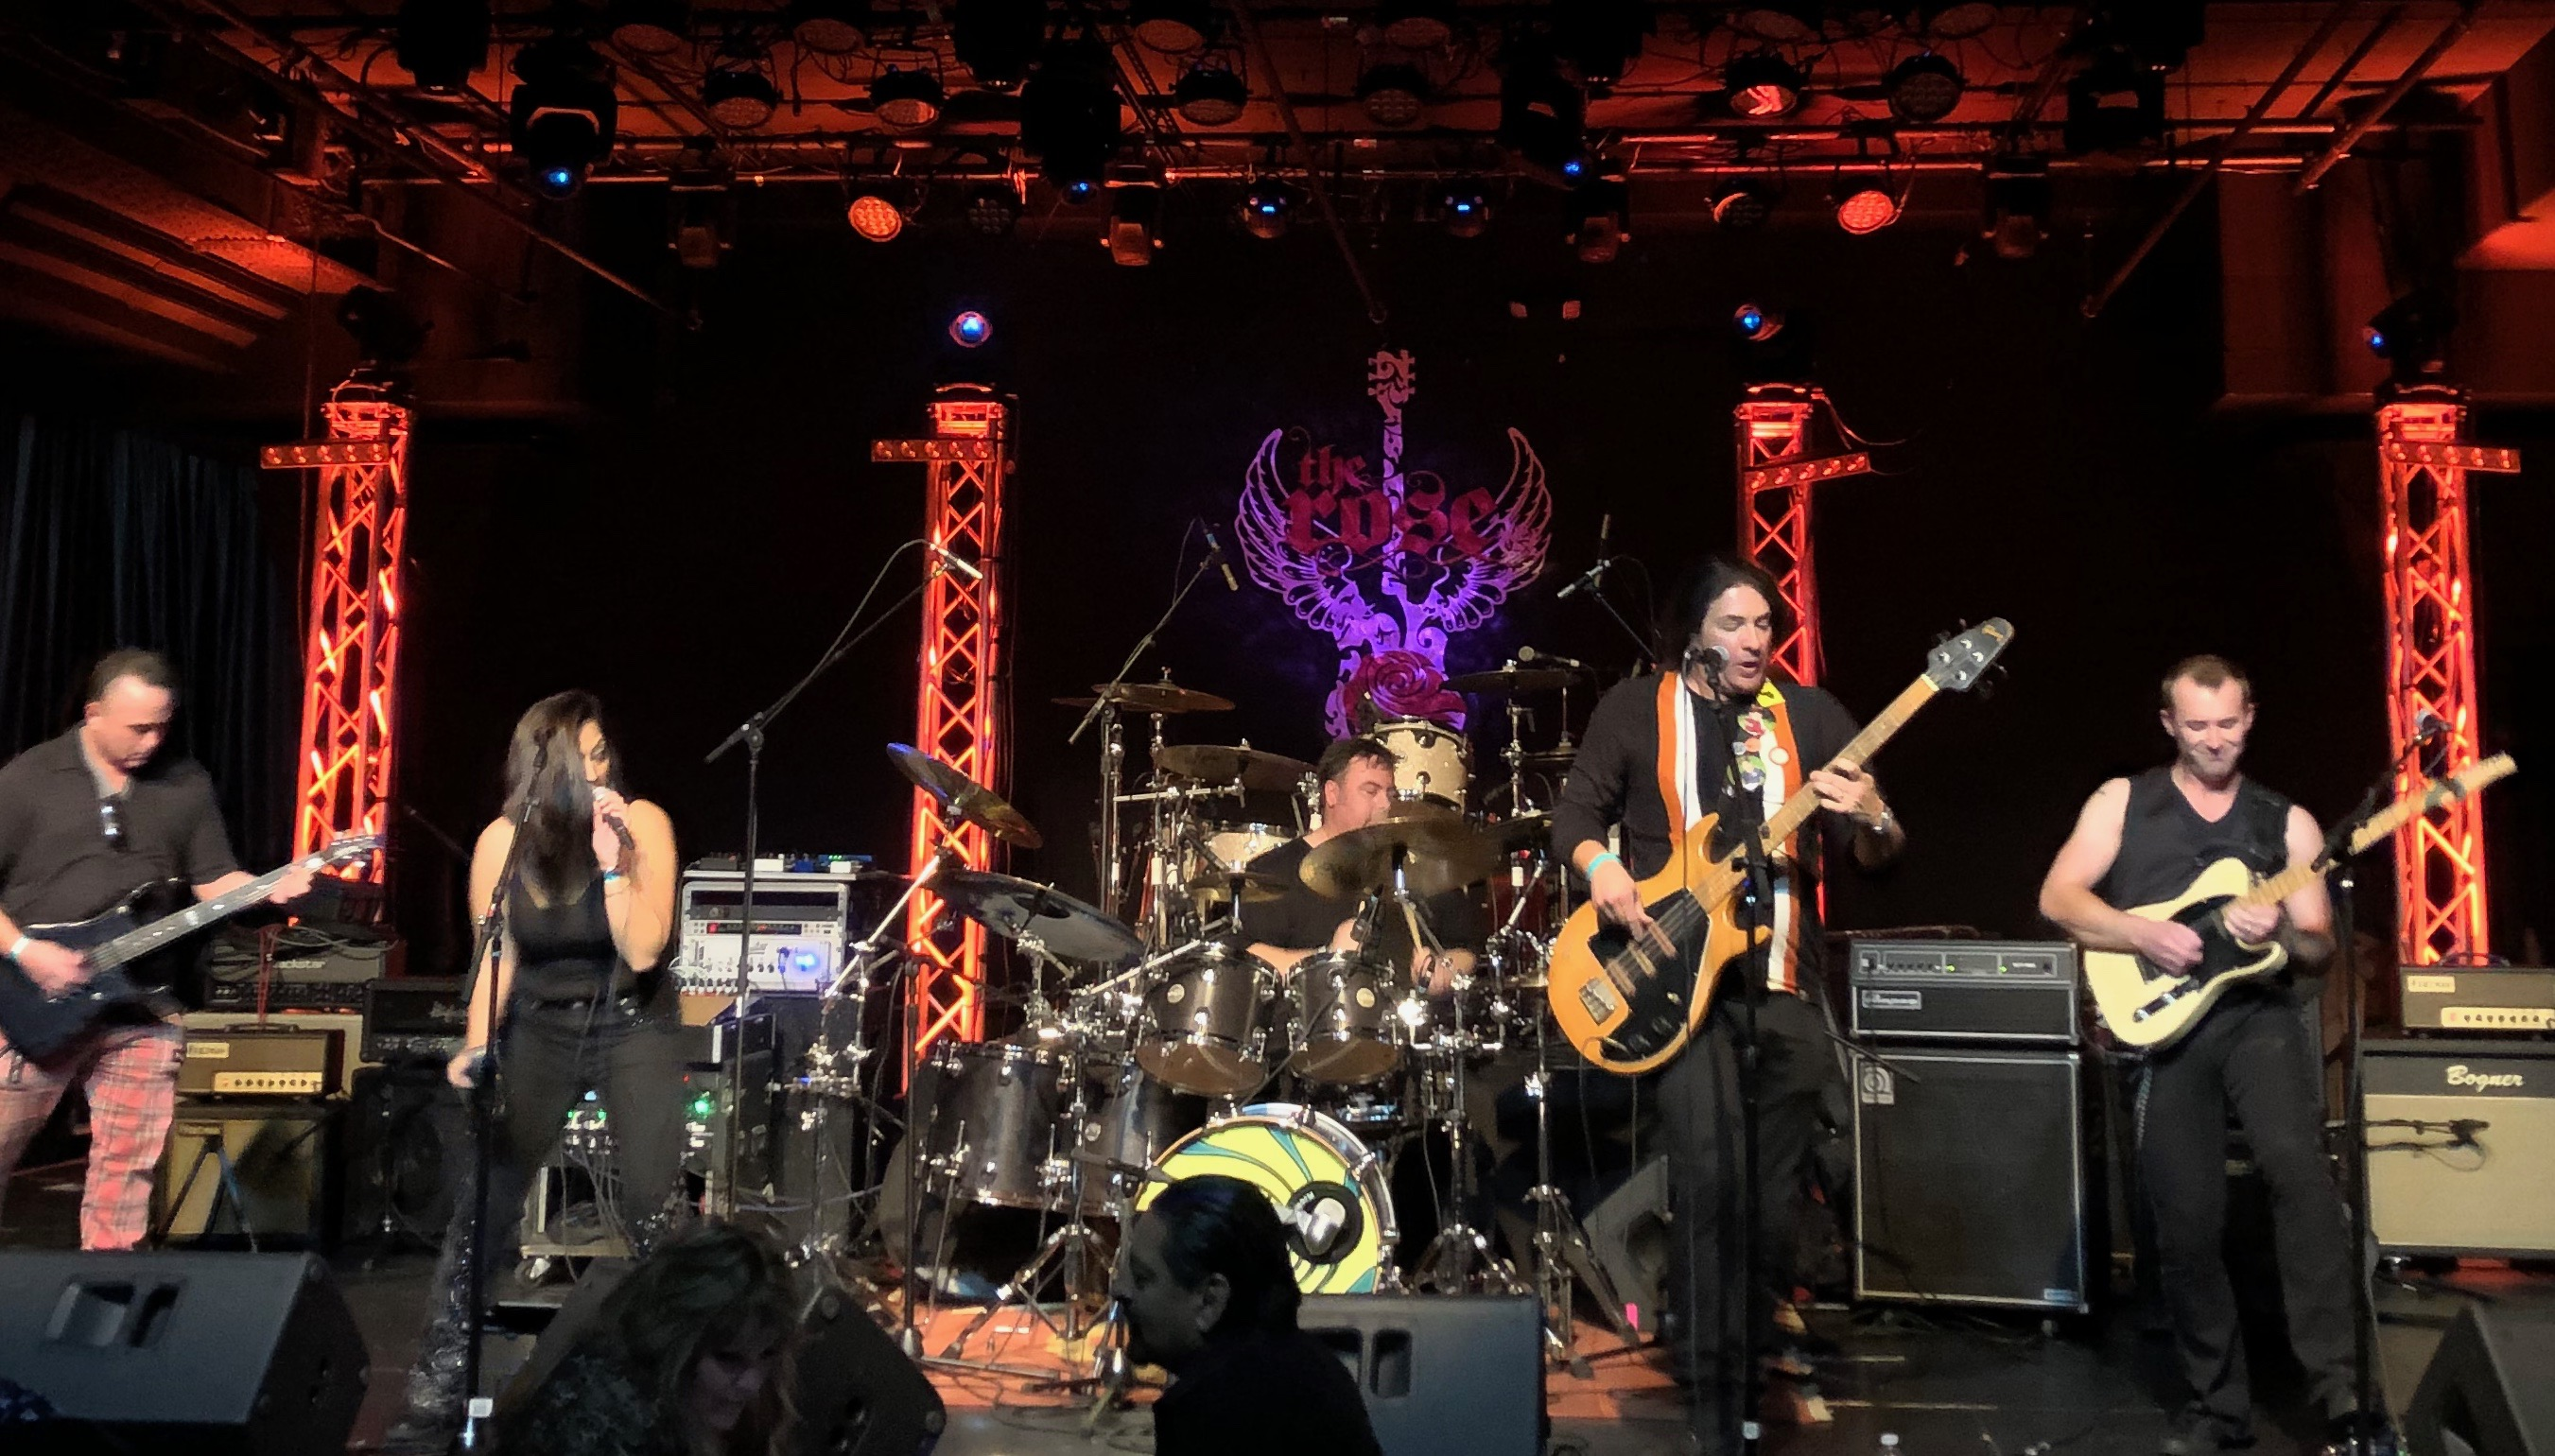 The Rose, Pasadena, CA (1-24-20) opening for Jack Russell's Great White    photo by Gina Spiropoulos